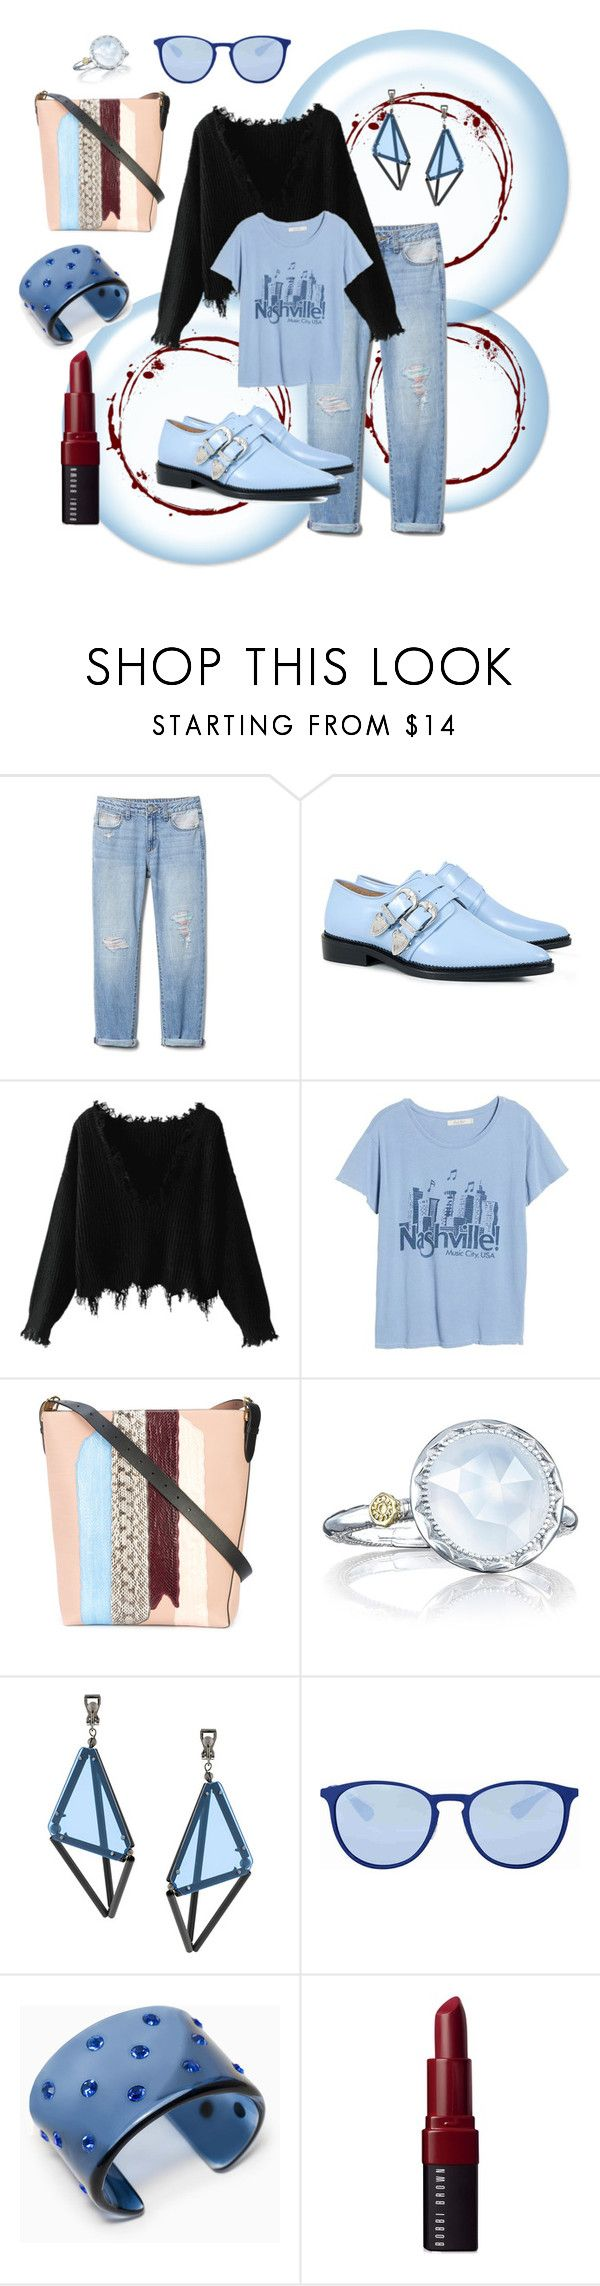 """""""fun!"""" by debep ❤ liked on Polyvore featuring Carven, Junk Food Clothing, Diane Von Furstenberg, Tacori, Issey Miyake, Ray-Ban, Max&Co. and Bobbi Brown Cosmetics"""